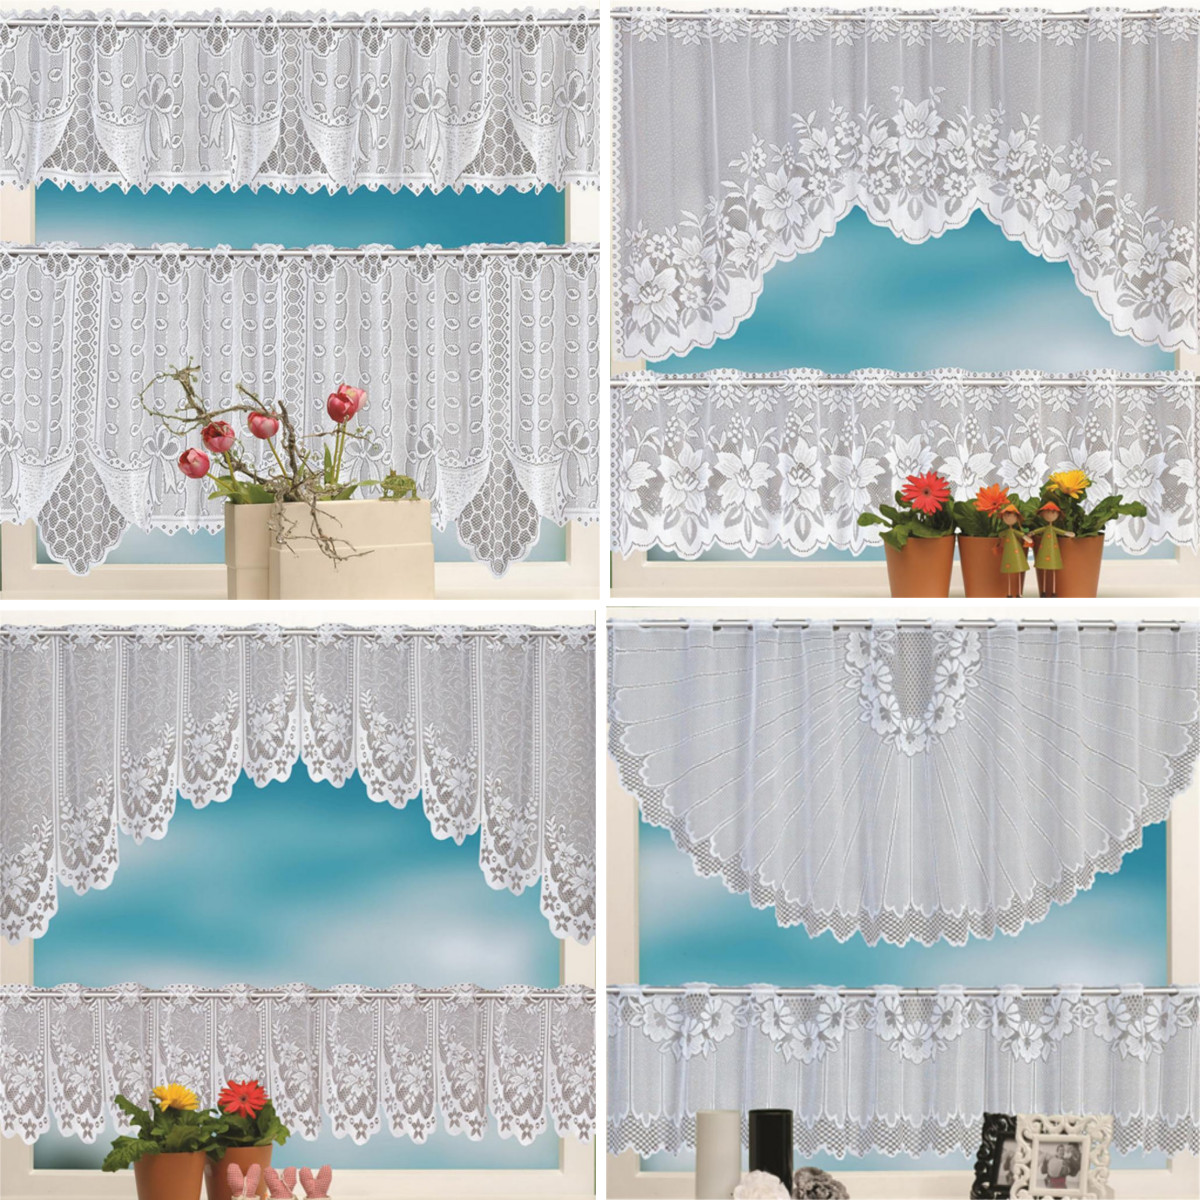 Details About 2PCS Lace Coffee Cafe Window Tier Curtain Kitchen Dining Room Home Decor Set